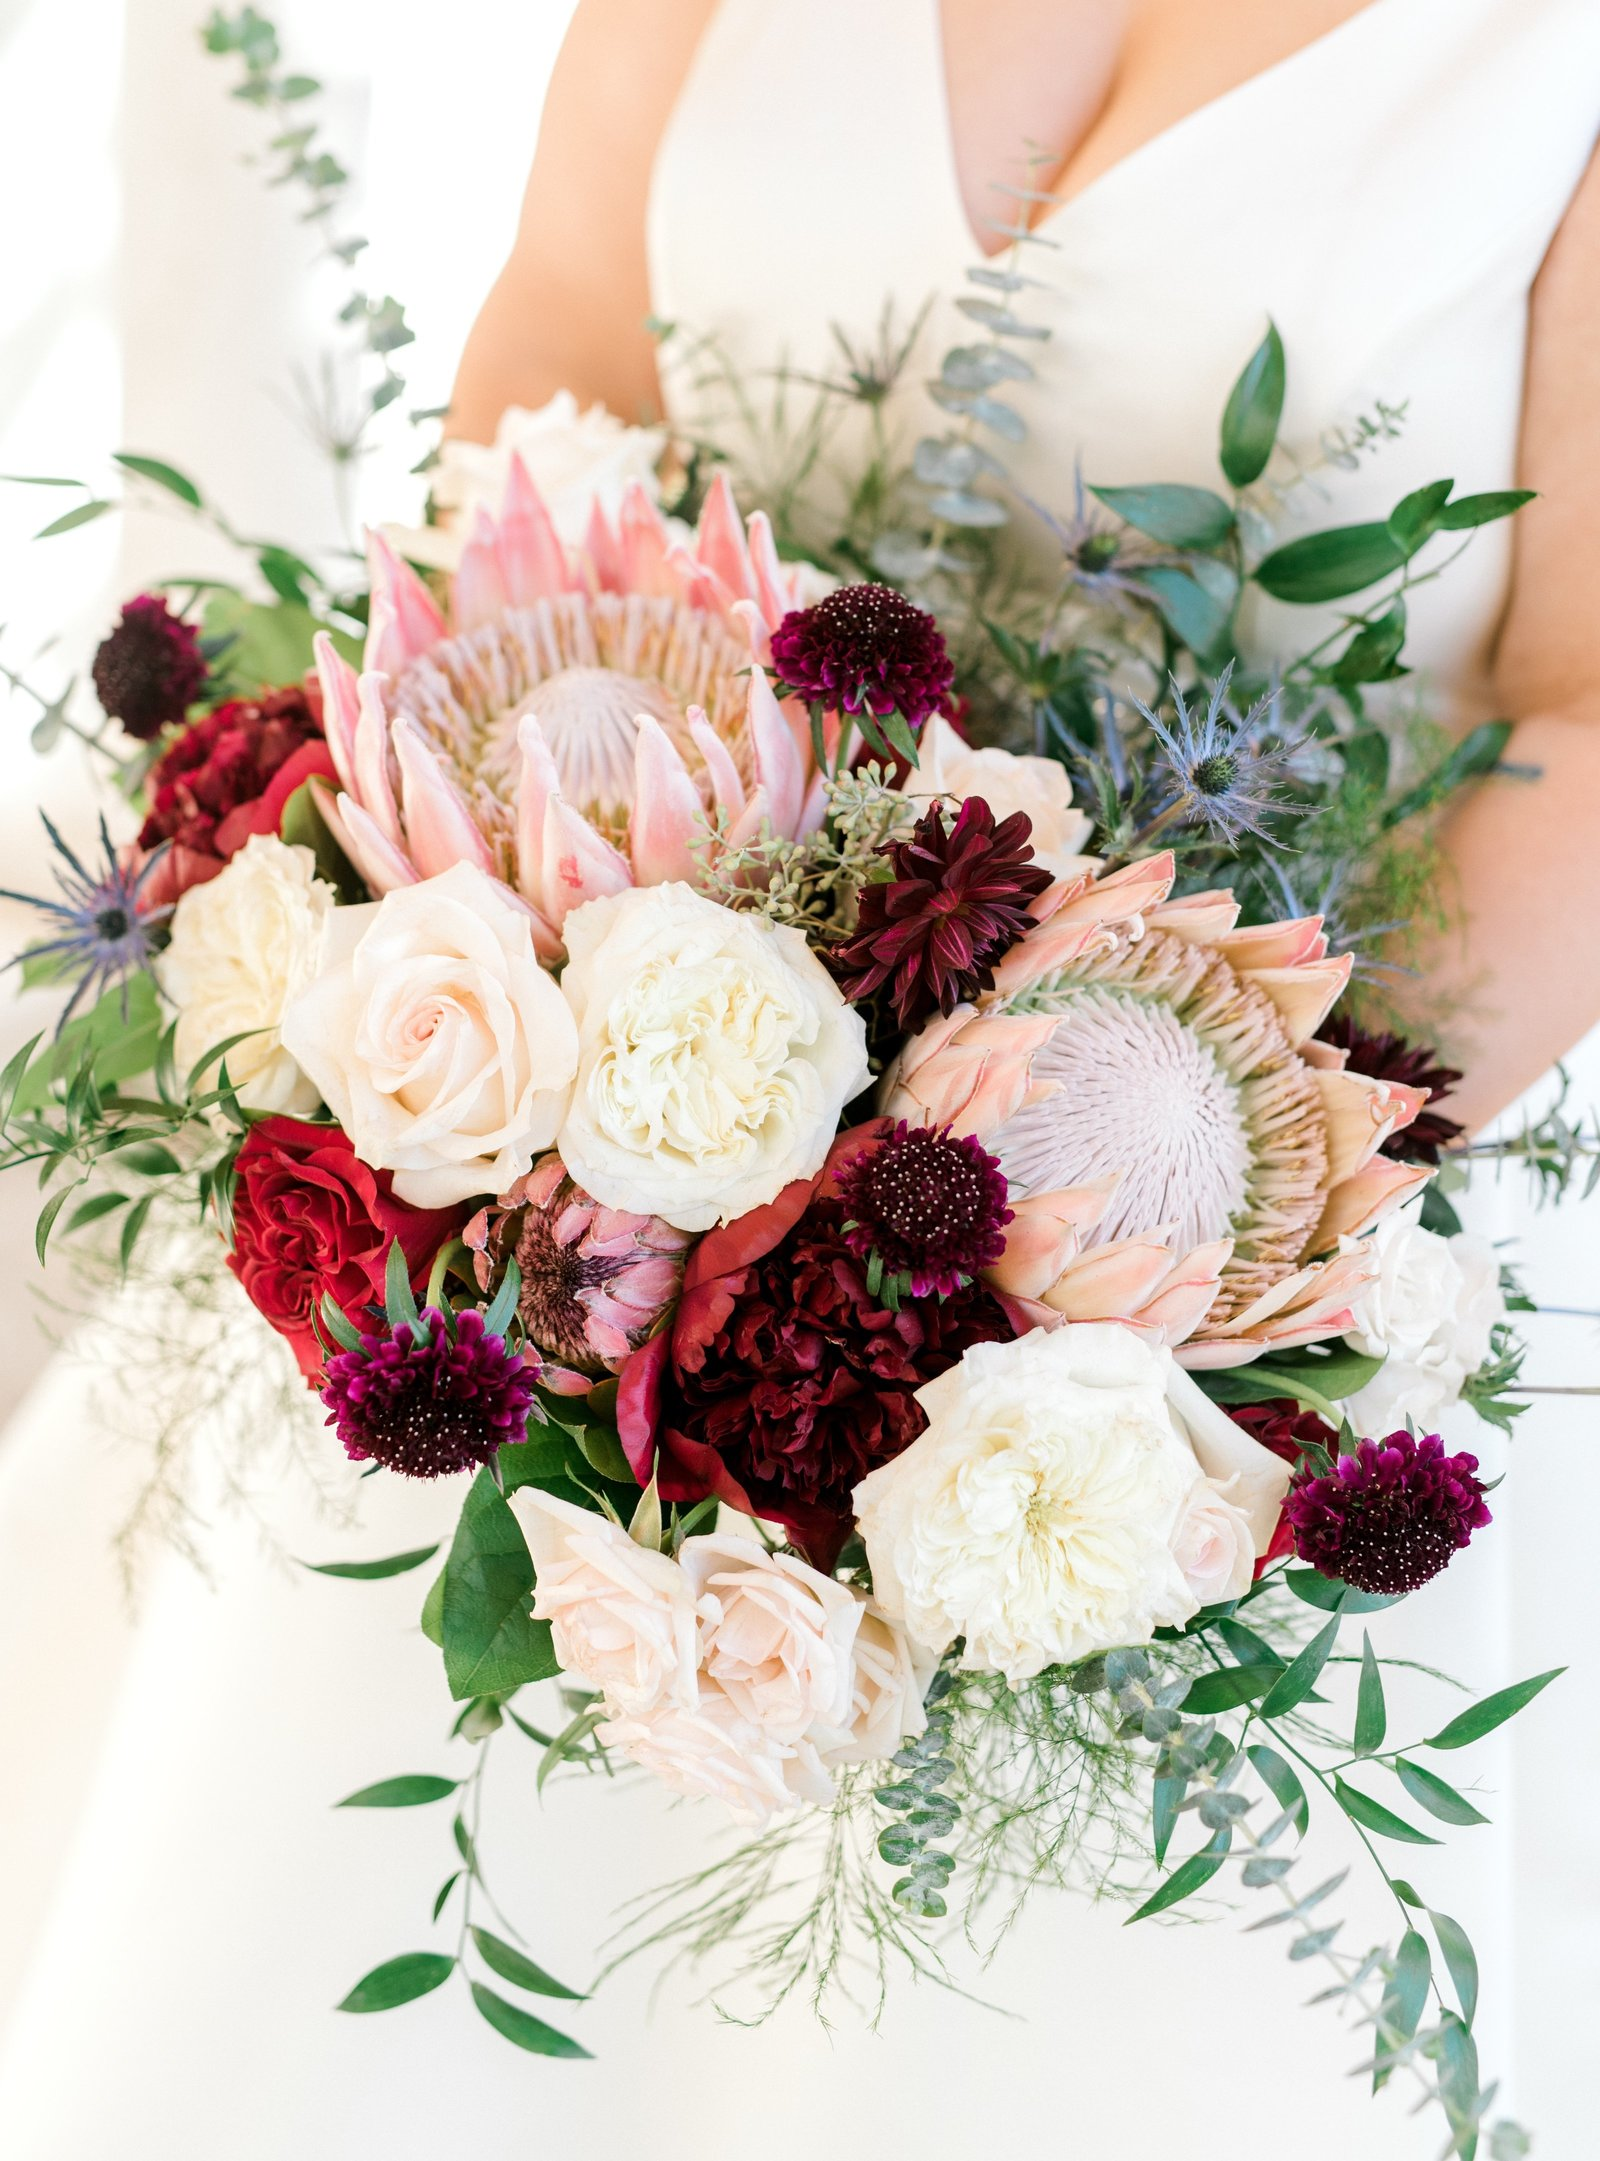 Bridal bouquet with King protea and burgundy and blush roses